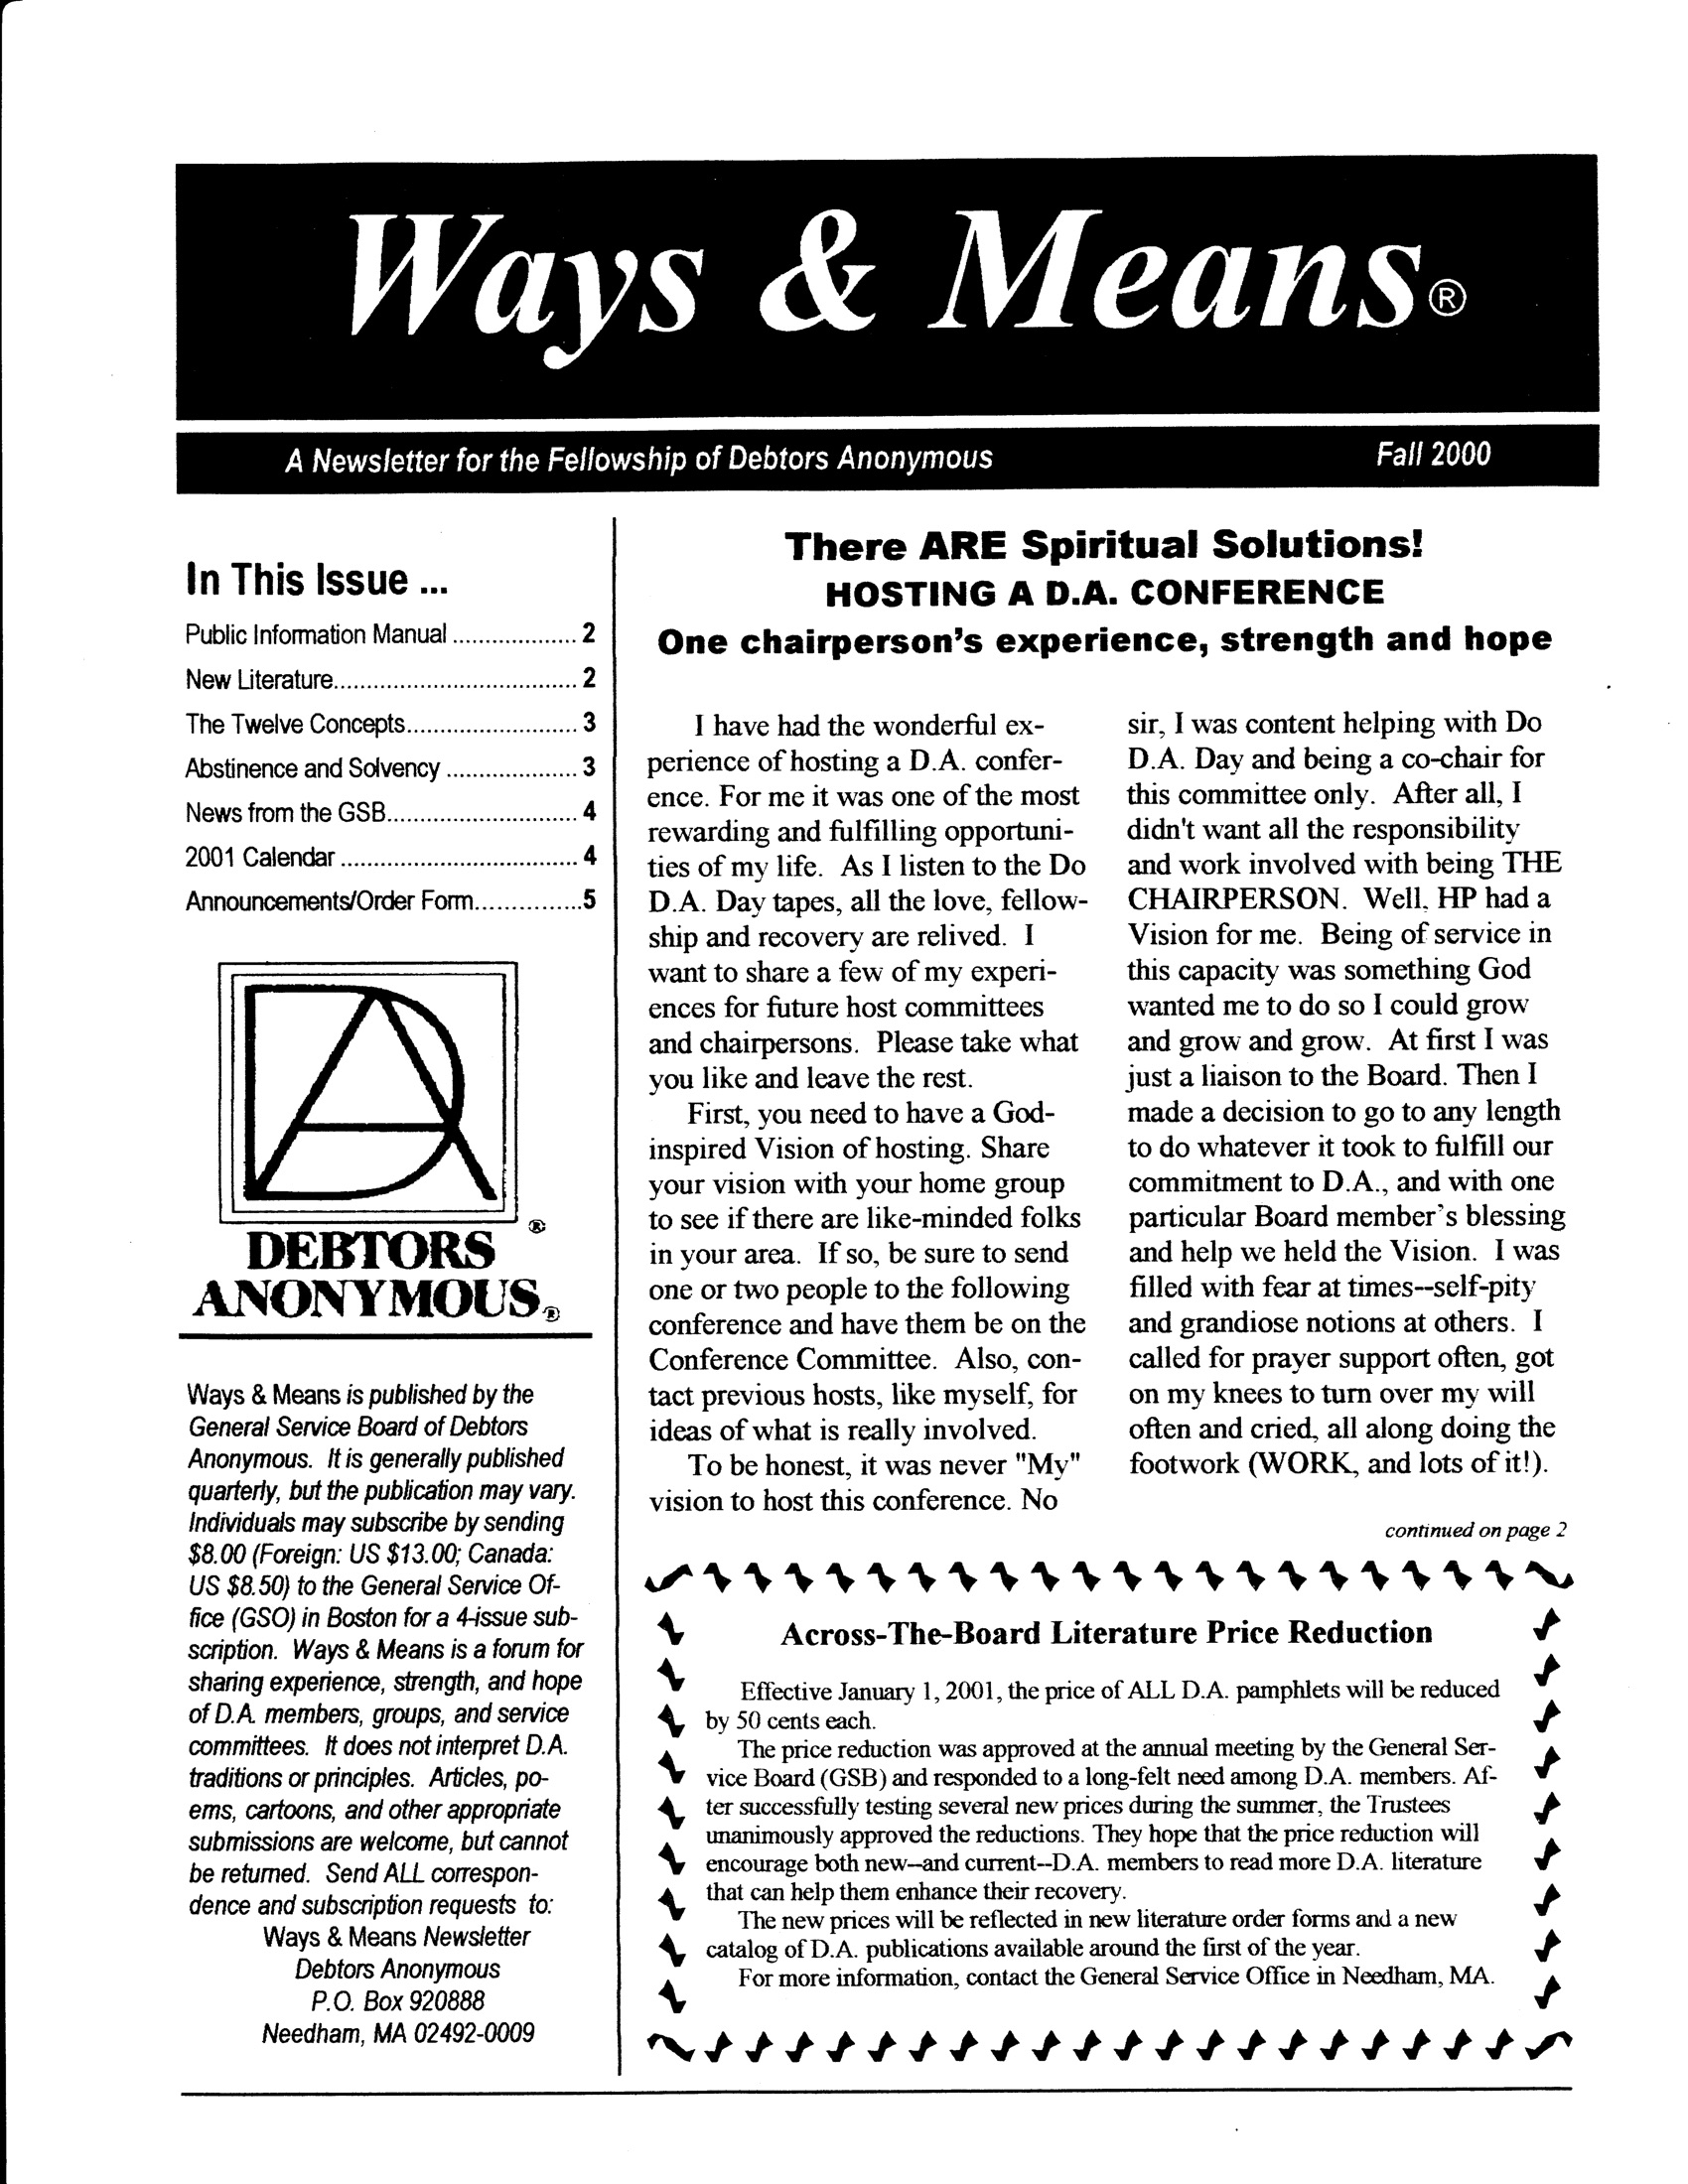 Ways & Means 4th QTR 2000